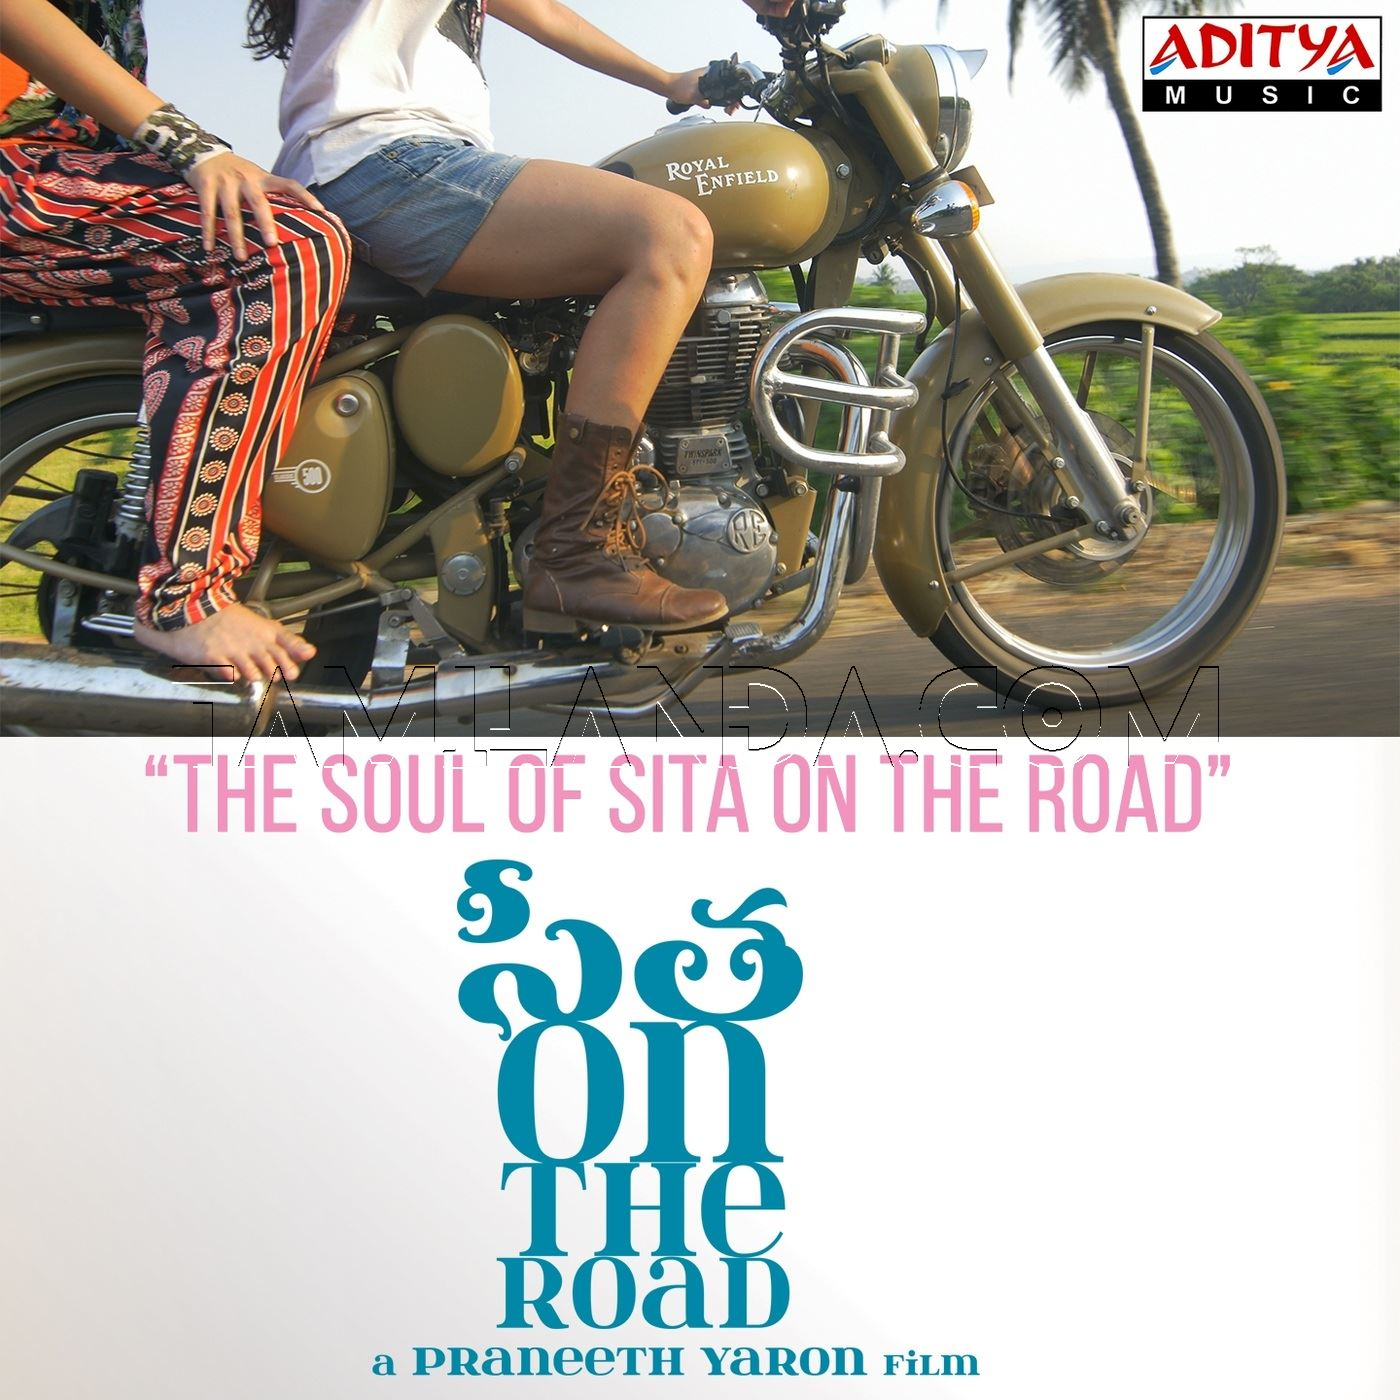 The Soul of Sita on the Road (From Sita on the Road) – Single (2019)